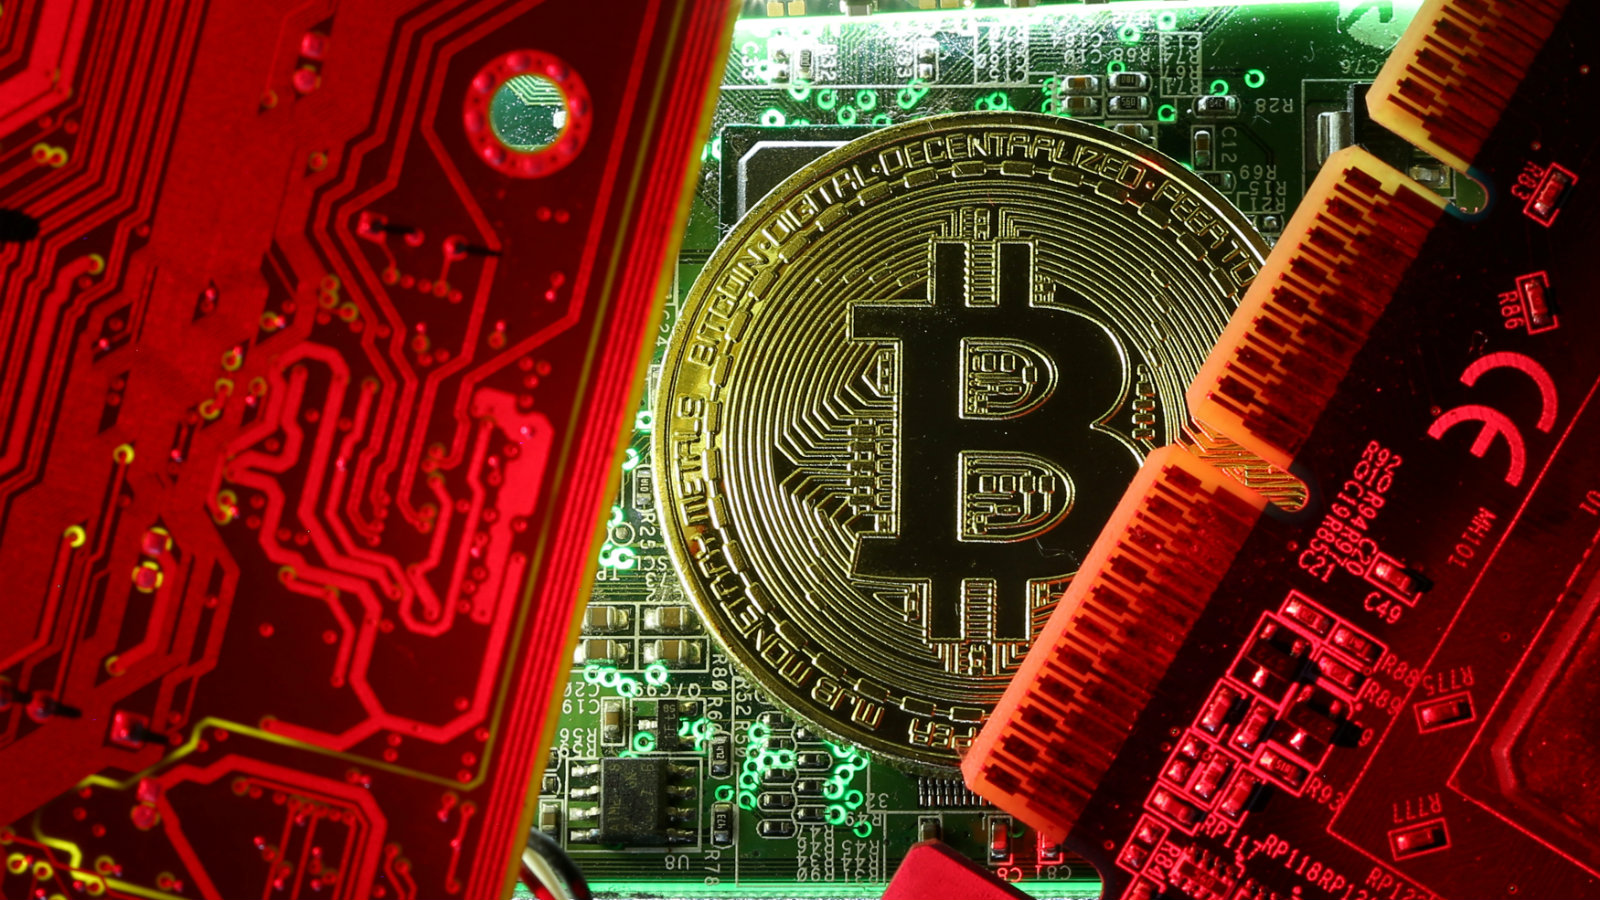 A coin representing the bitcoin cryptocurrency is seen on computer circuit boards in this